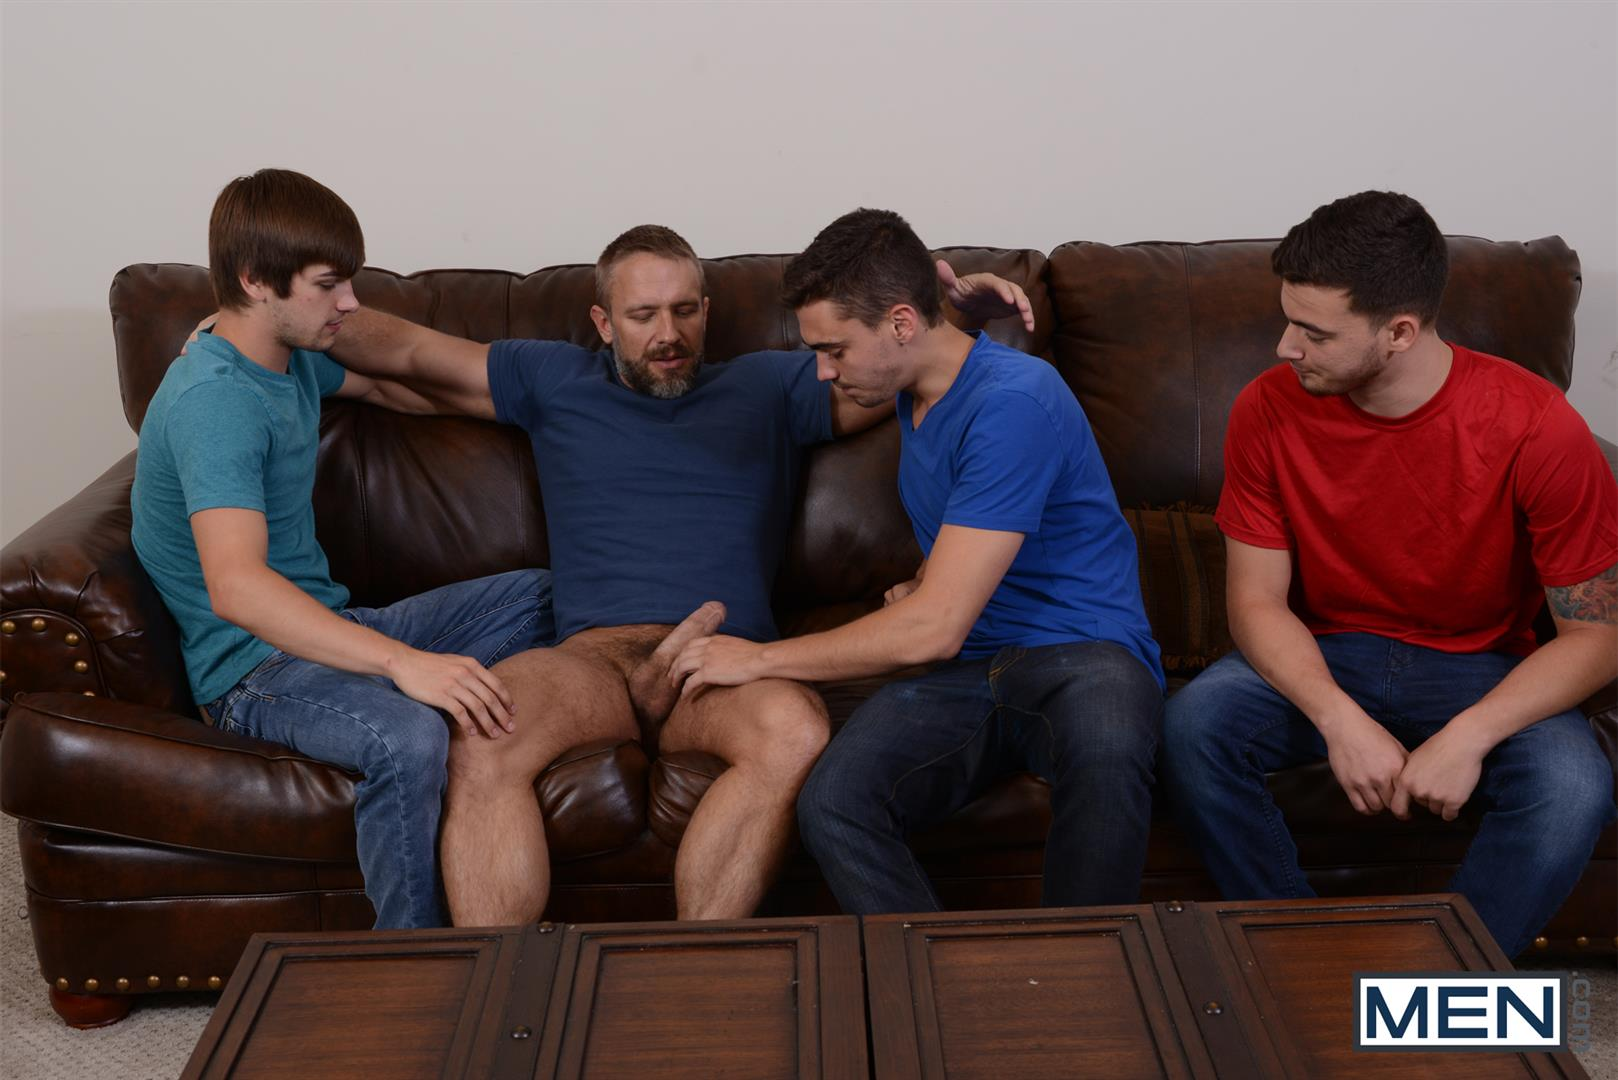 Men-Jizz-Orgy-Asher-Hawk-and-Dirk-Caber-and-Johnny-Rapid-and-Trevor-Spade-Triple-Penetrated-In-the-Ass-Amateur-Gay-Porn-03 Stepfather Dirk Caber Gets TRIPLE Penetrated By His Stepsons